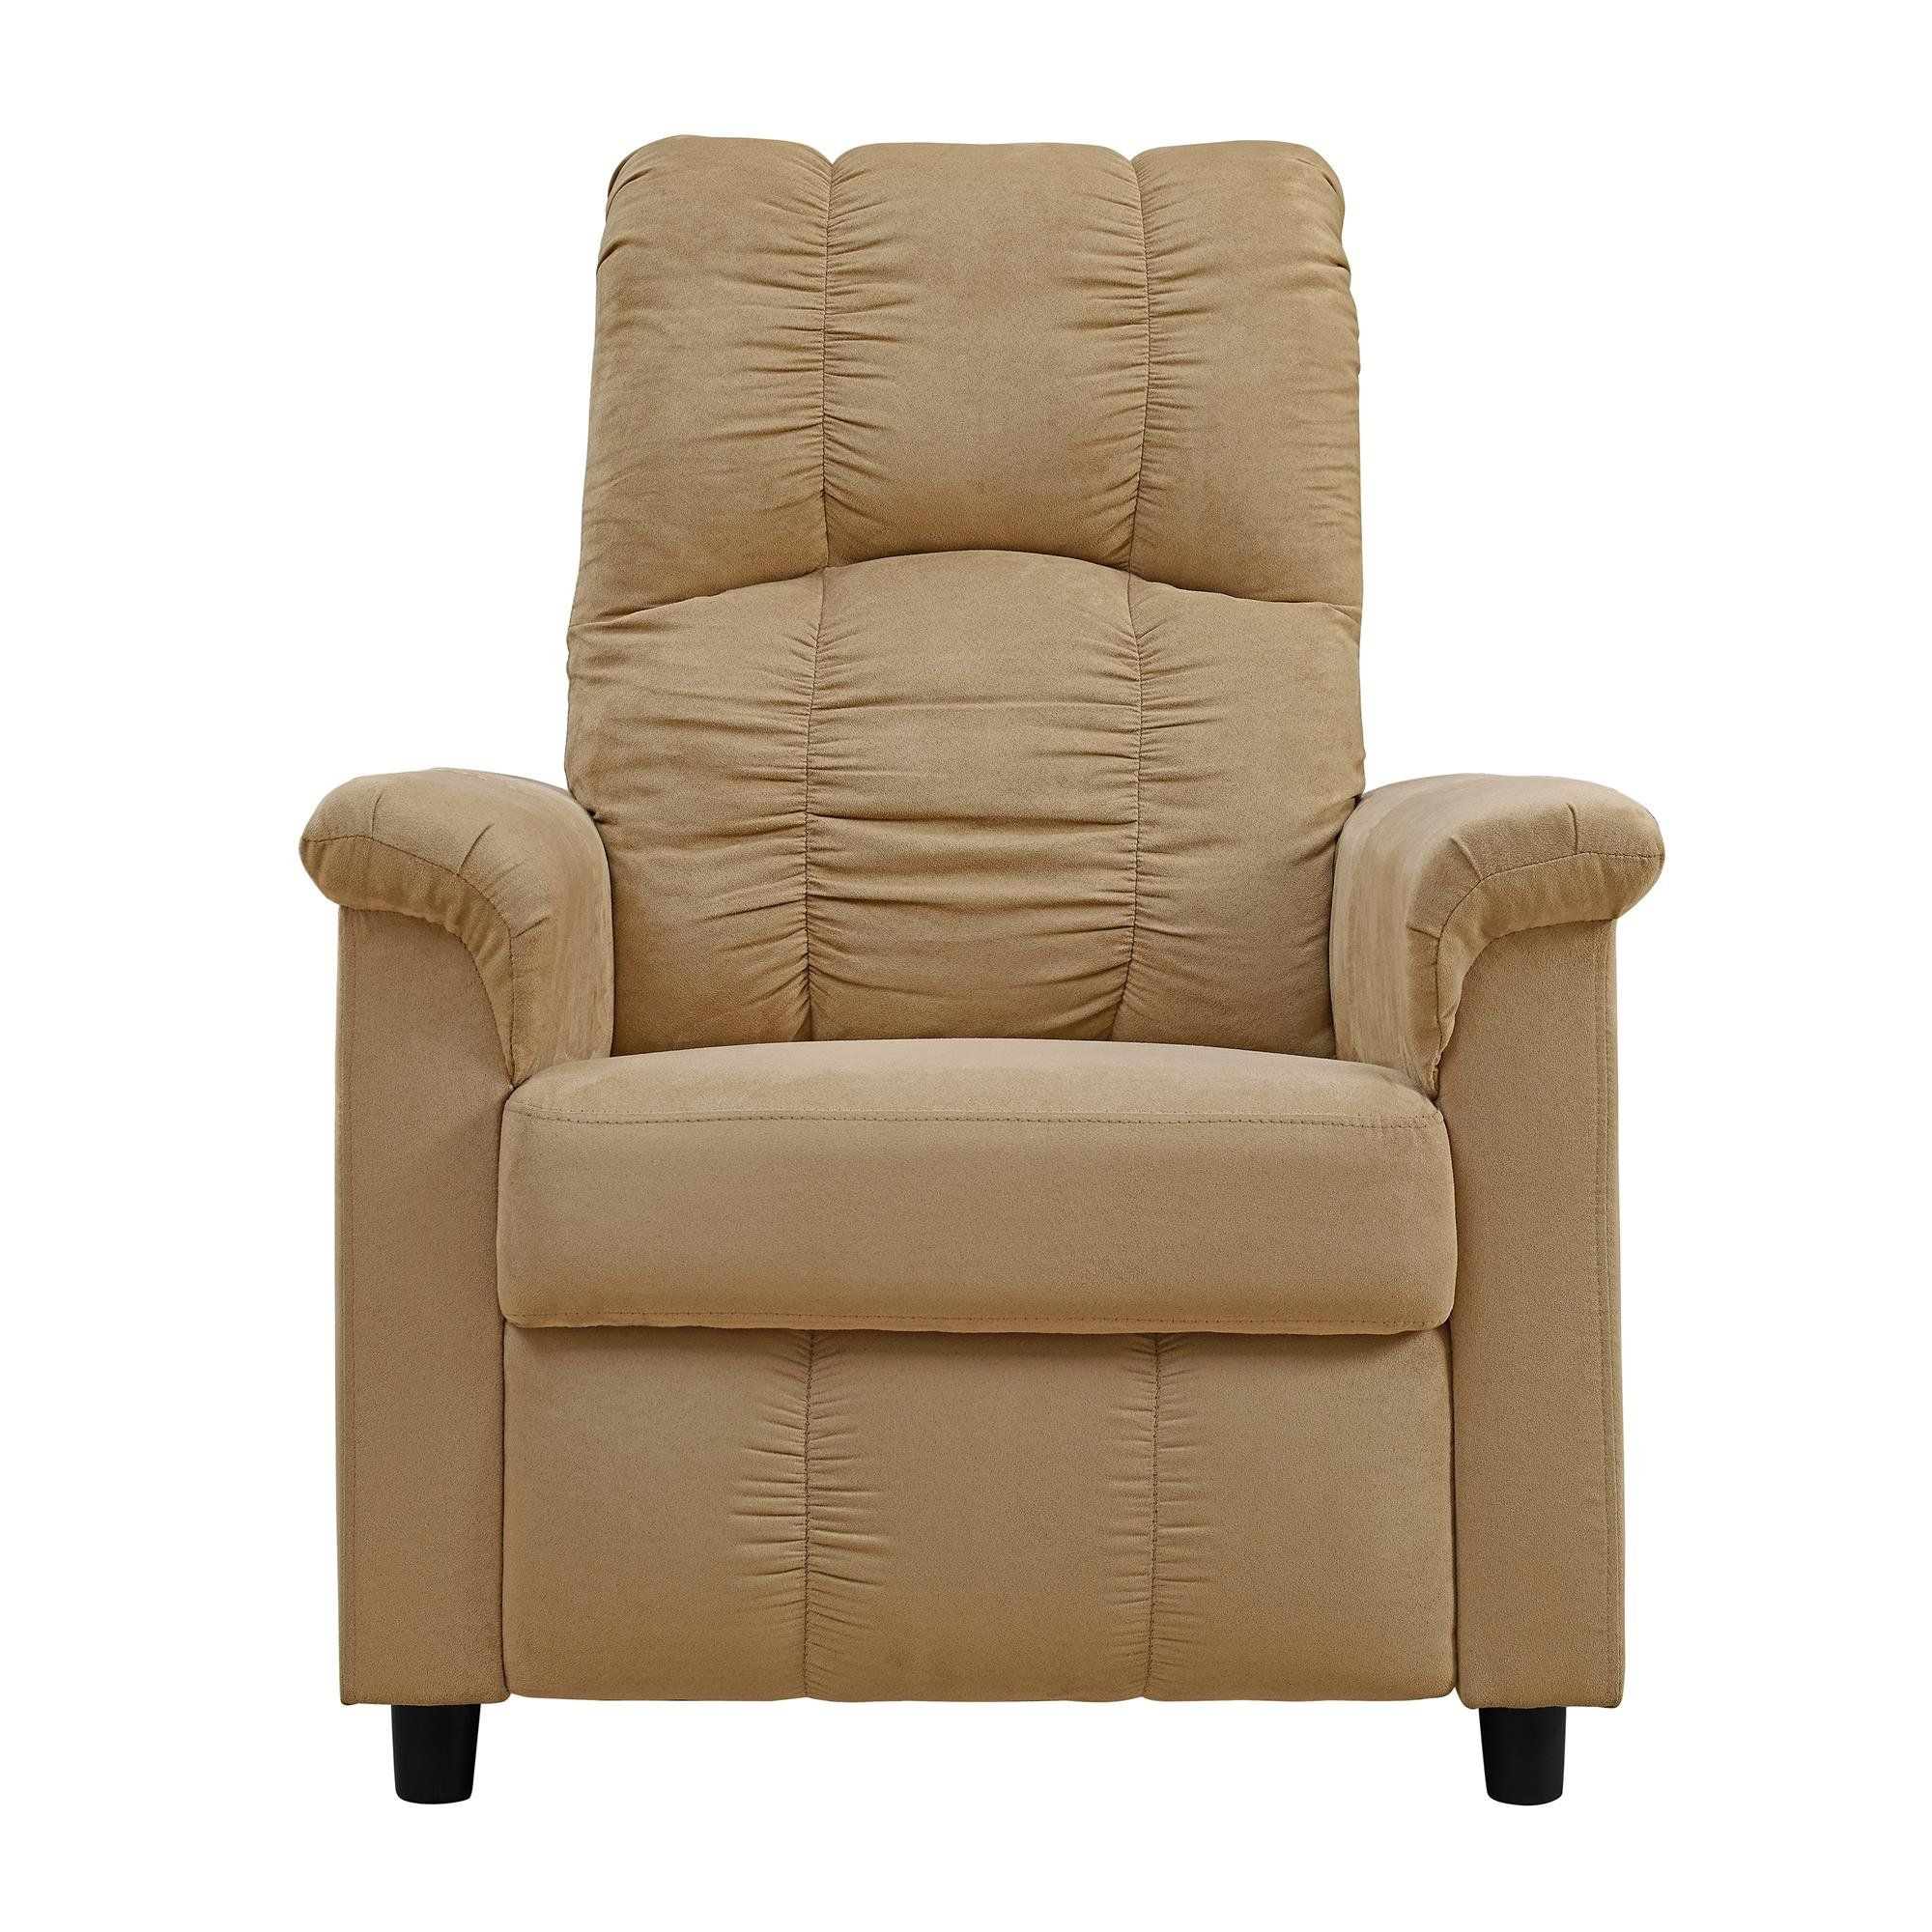 Dorel Living Slim Recliner Beige To View Further For This Item Visit The Image Link This Is An Affiliate Link In 2020 Dorel Living Recliner Recliner Chair